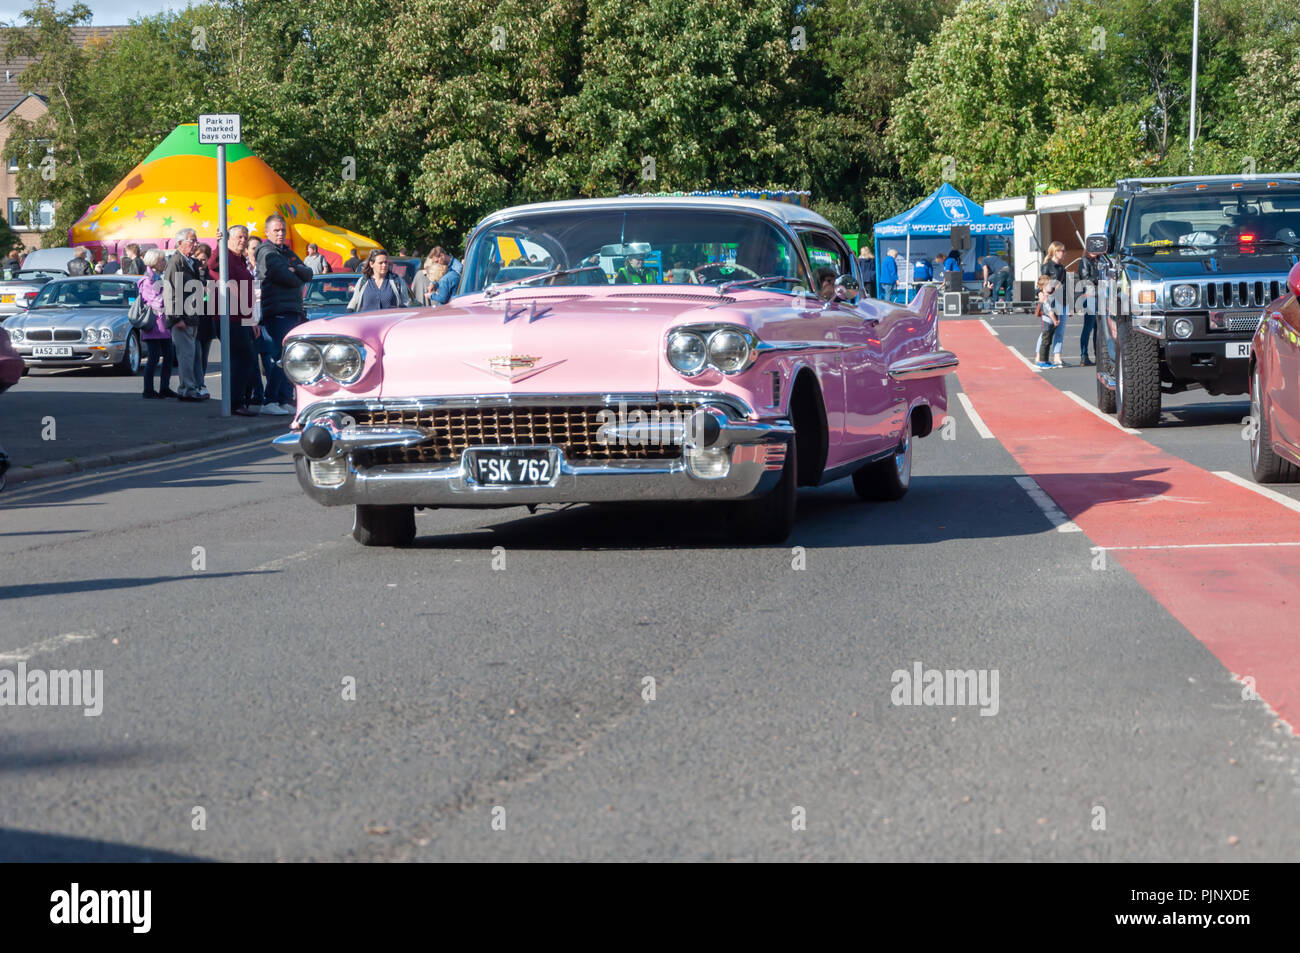 Glasgow, Scotland, UK. 8th September, 2018. Pink Cadillac on display at Giffnock Village Classic Car Show which returns for the event's fifth year. On show are a range of classic, vintage and unique cars as well as fun and entertainment for all the family. Credit: Skully/Alamy Live News Stock Photo